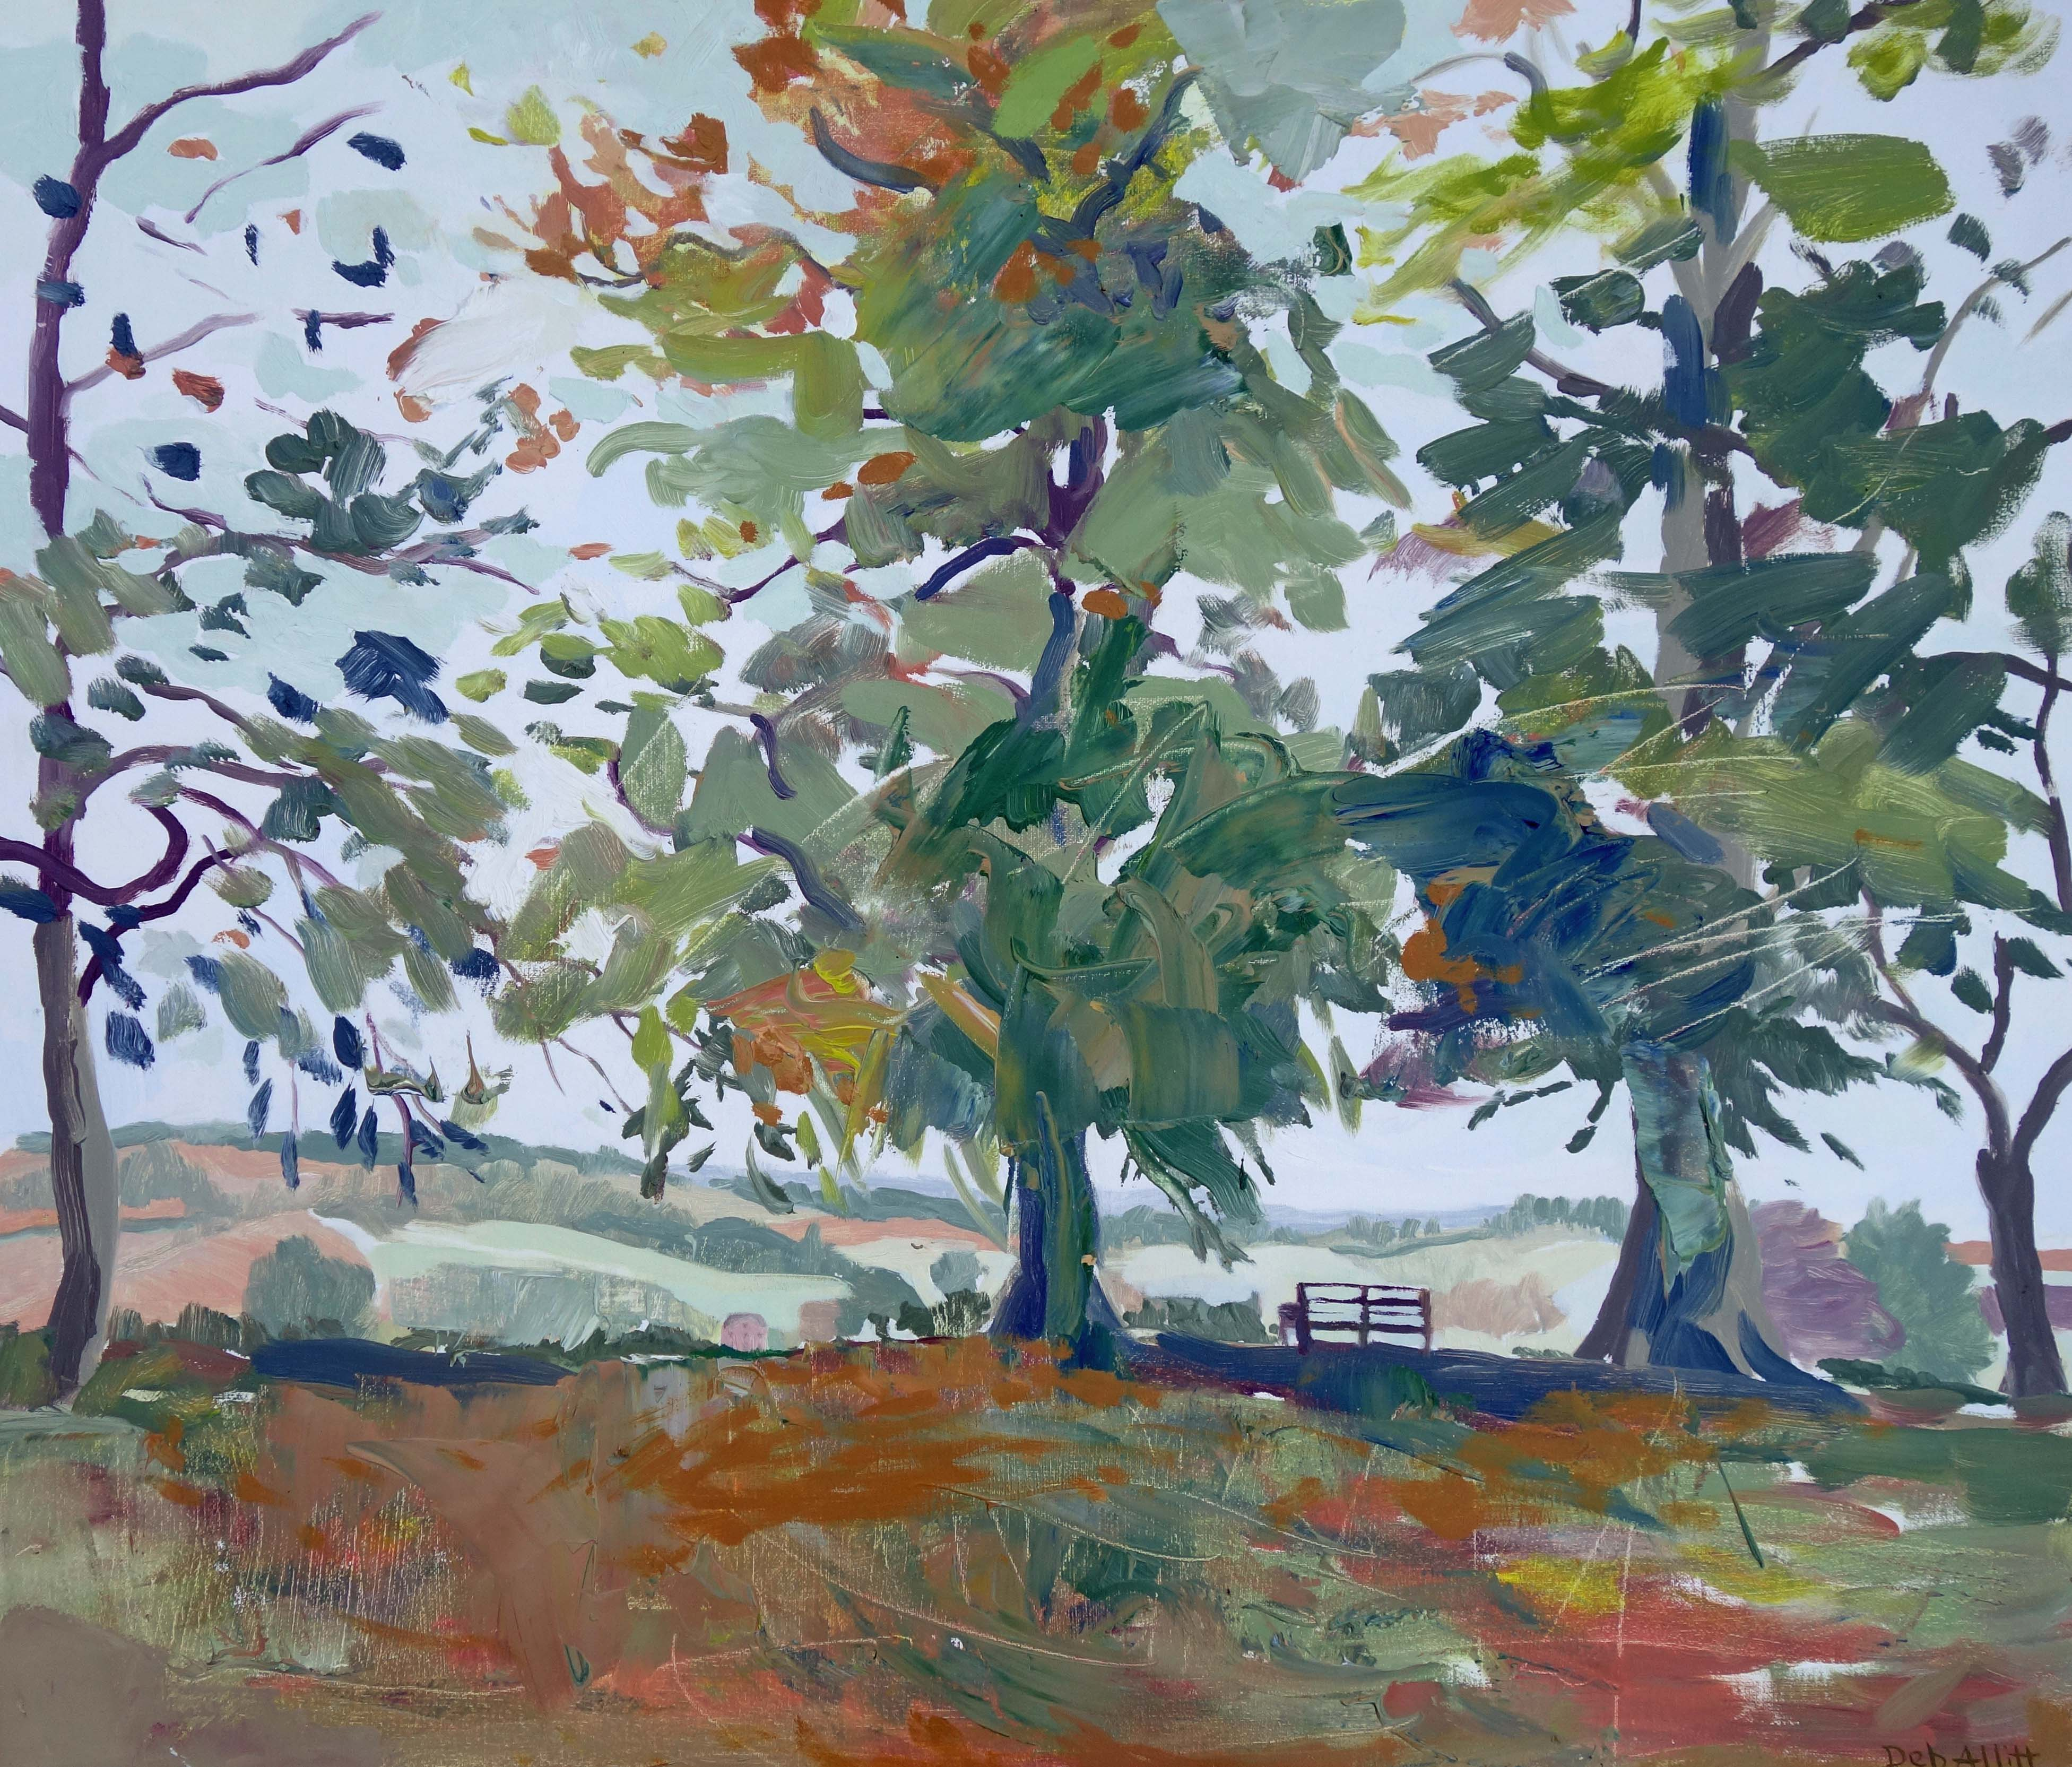 View of Kedleston Fields Beyond the Trees. Oil on canvas. 60 x 70 cm.